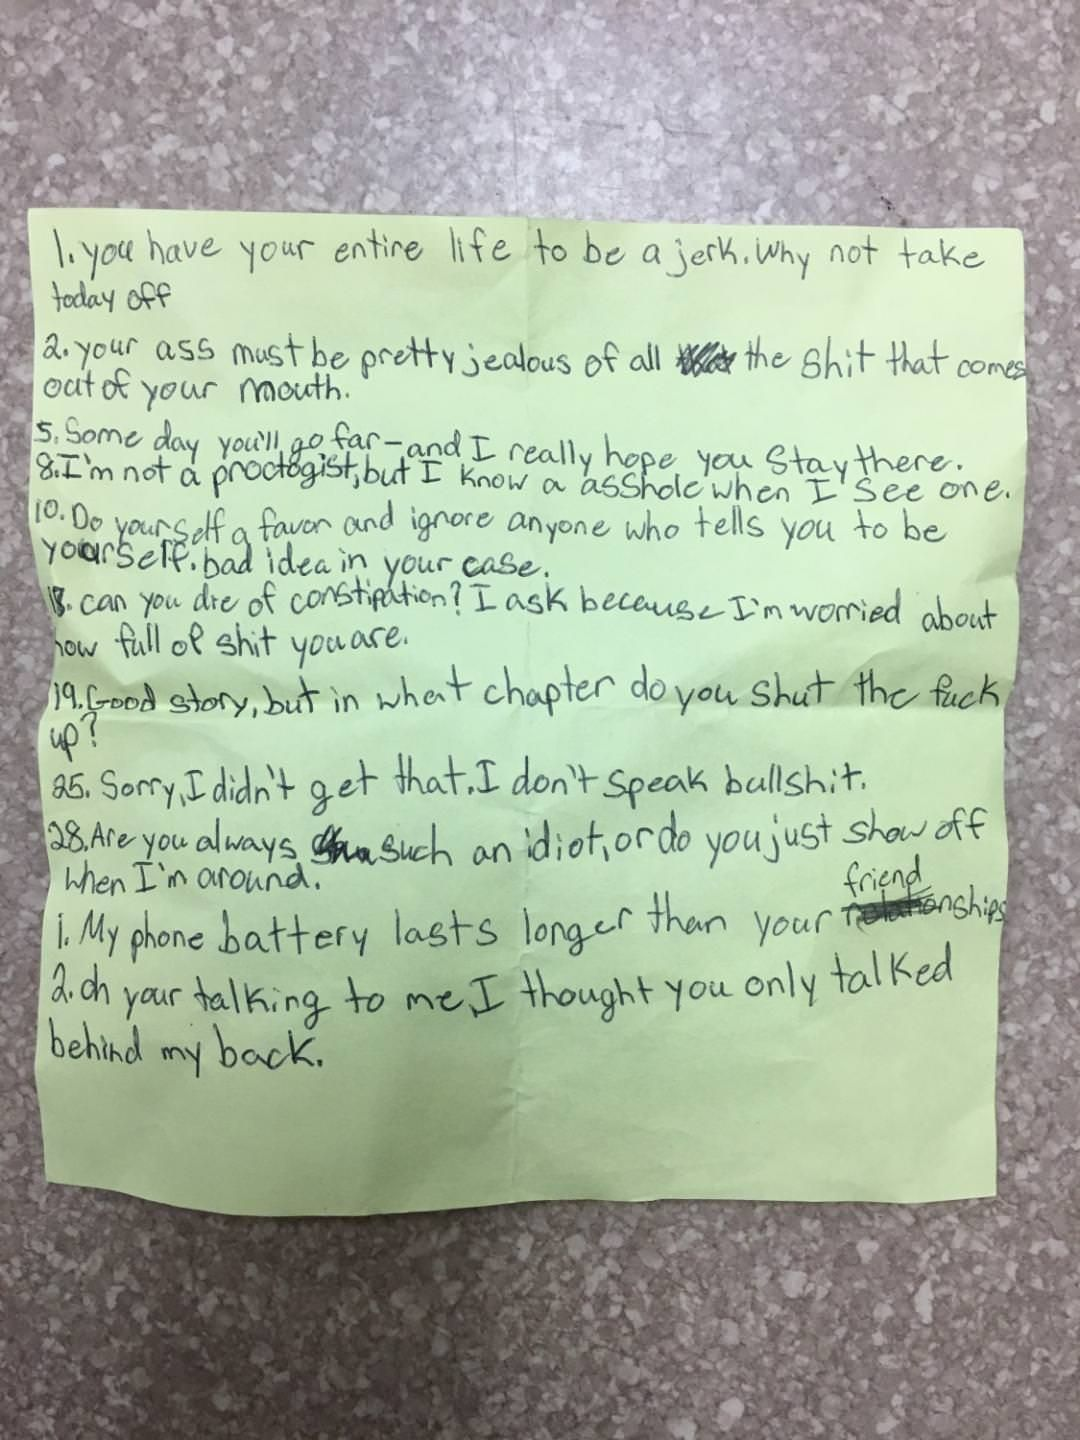 My mom found this in the desk of one of her 5th graders